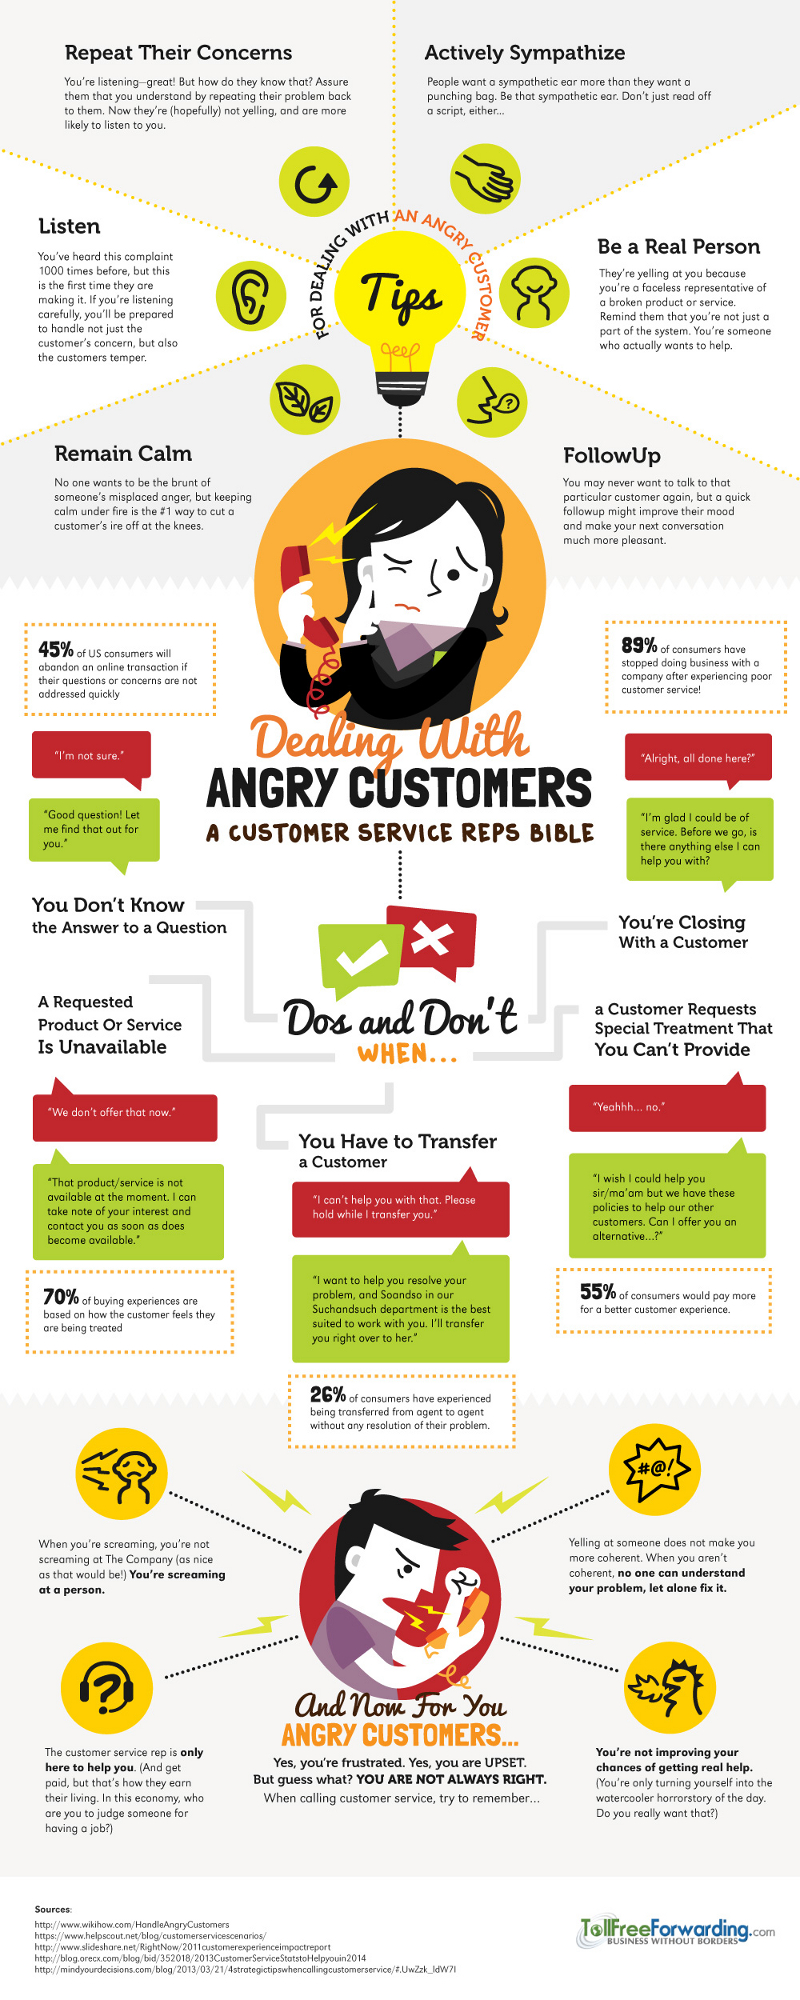 Dealing-with-an-Angry-Customer